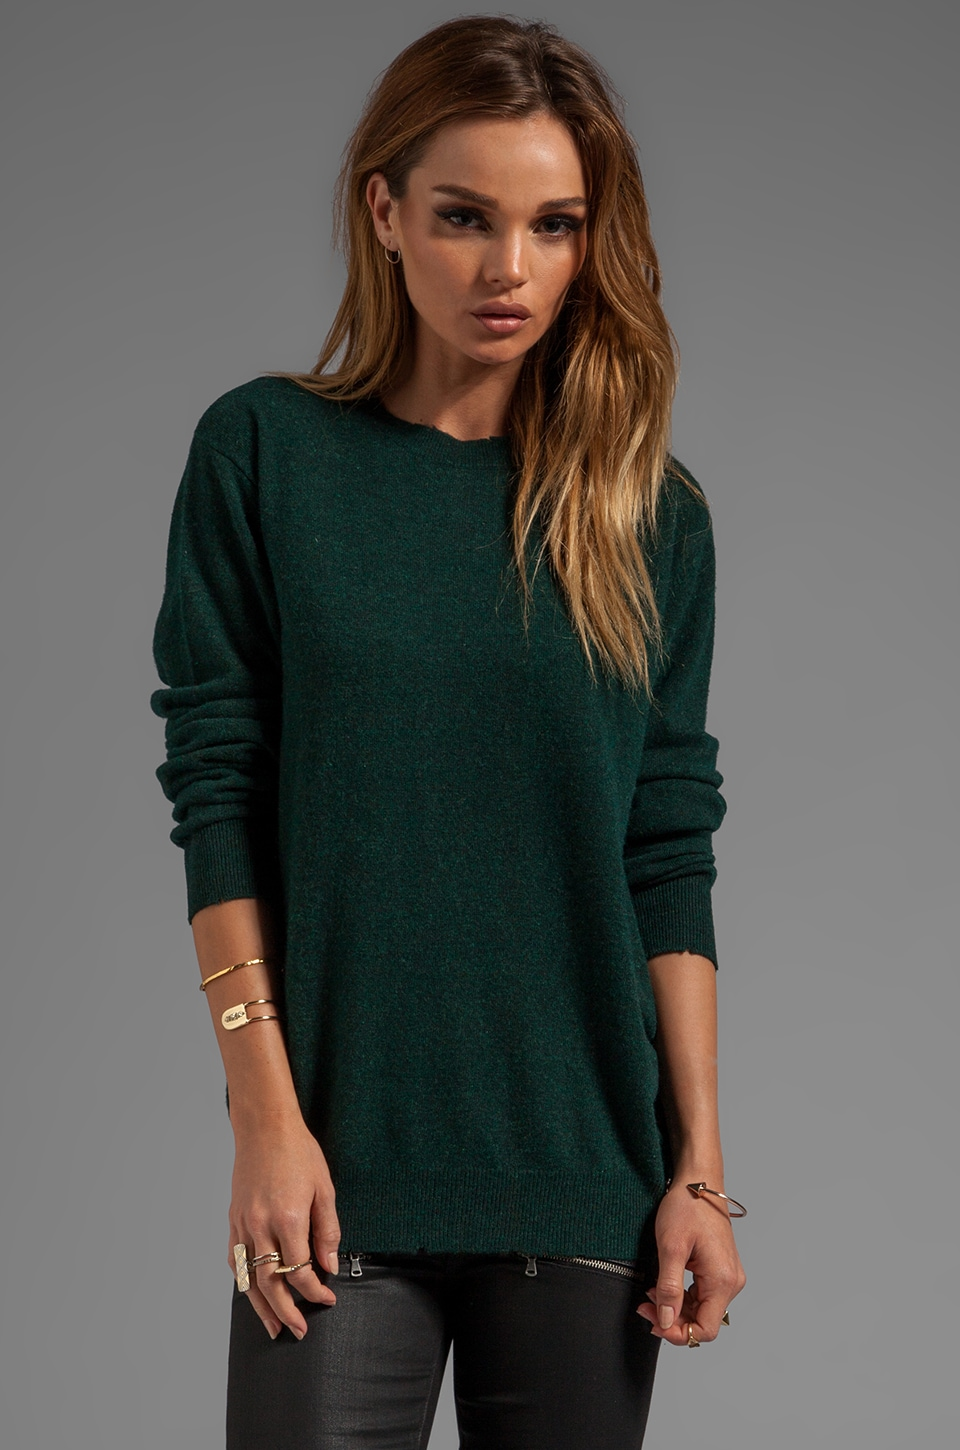 T by Alexander Wang Distressed Merino Blend Knit Pullover in Forest